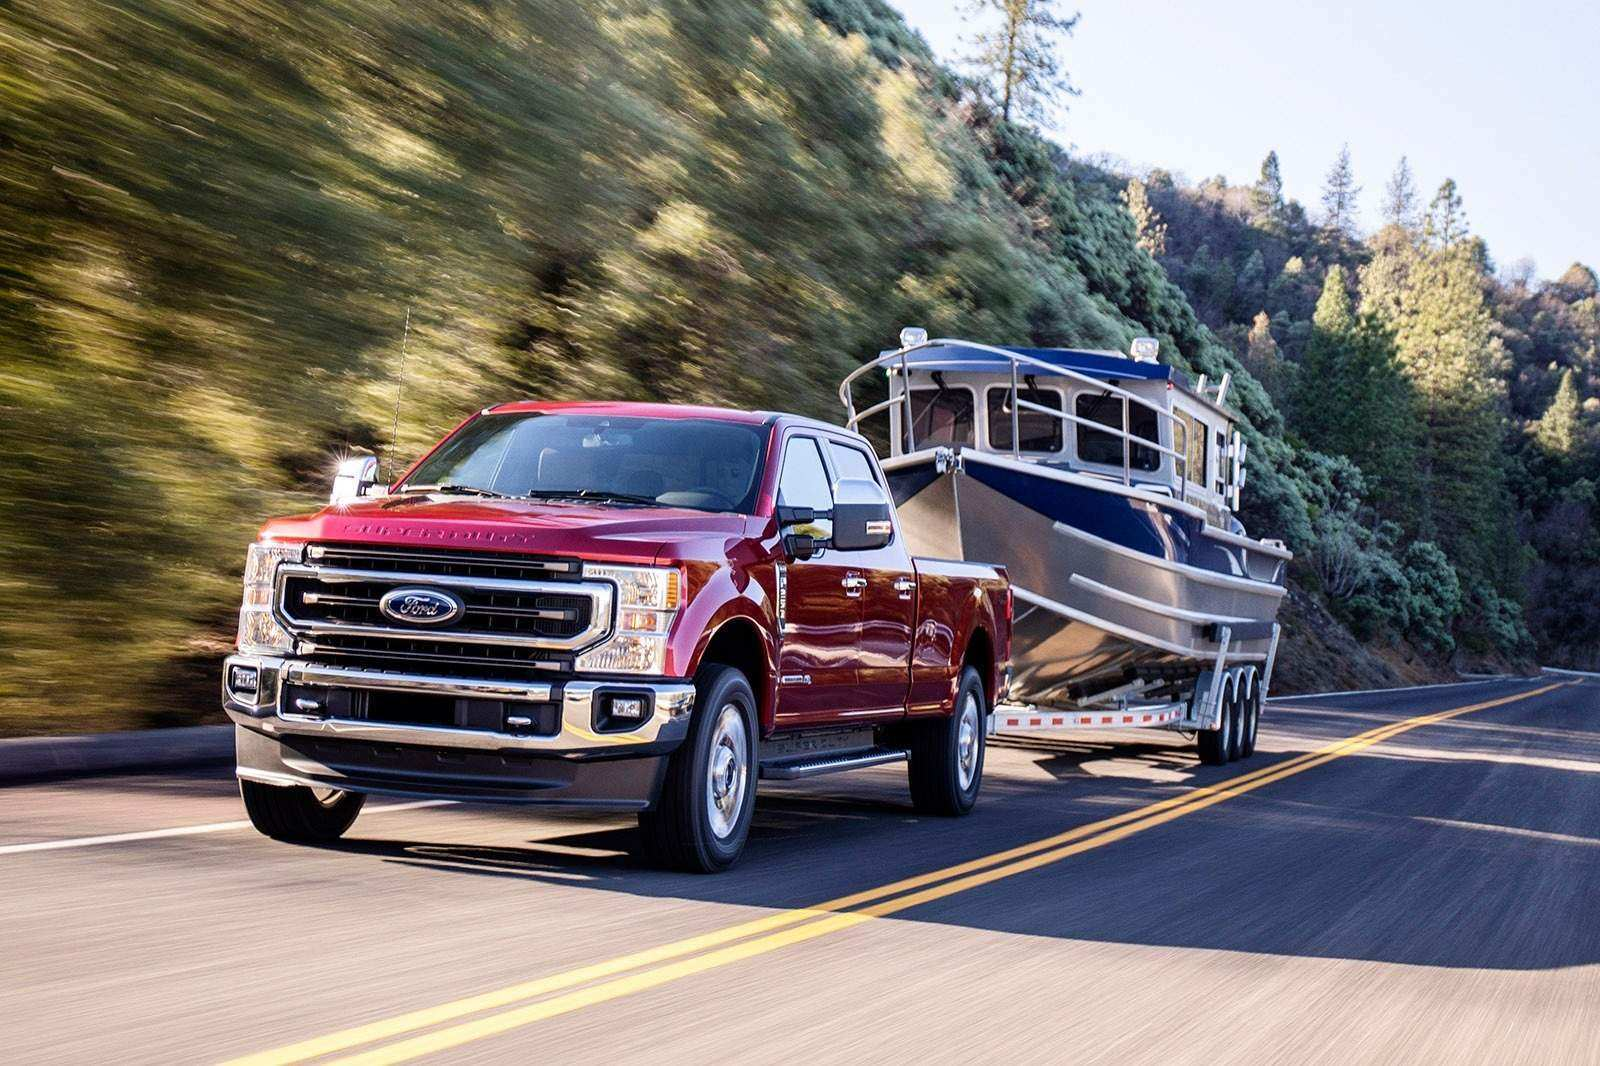 45 New 2020 Ford F350 Super Duty Redesign And Review